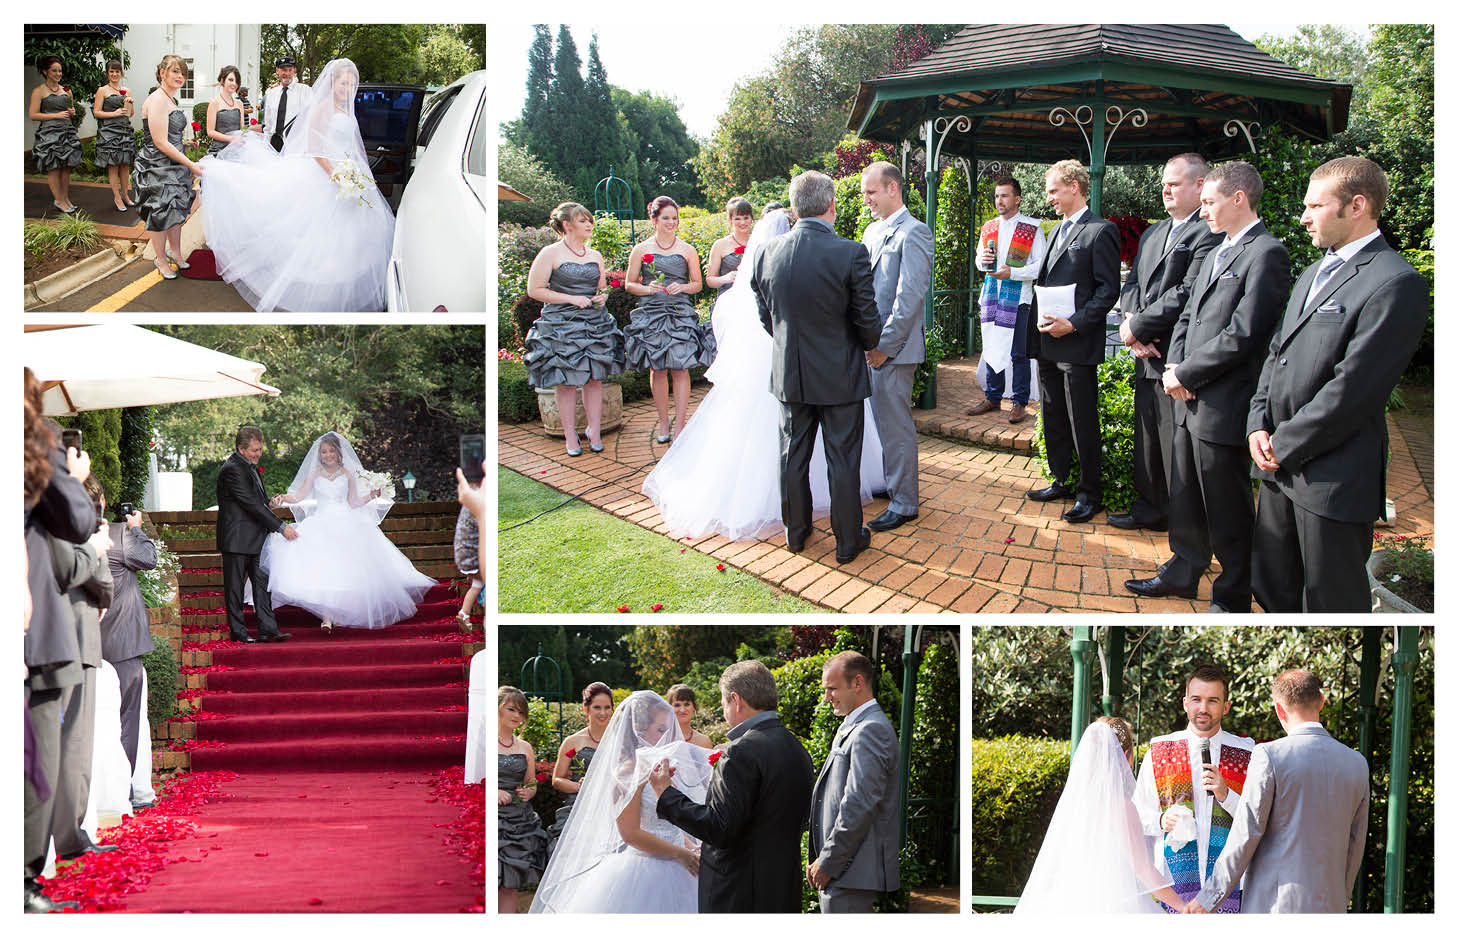 bride and groom wedding ceremony at the country club johannesburg